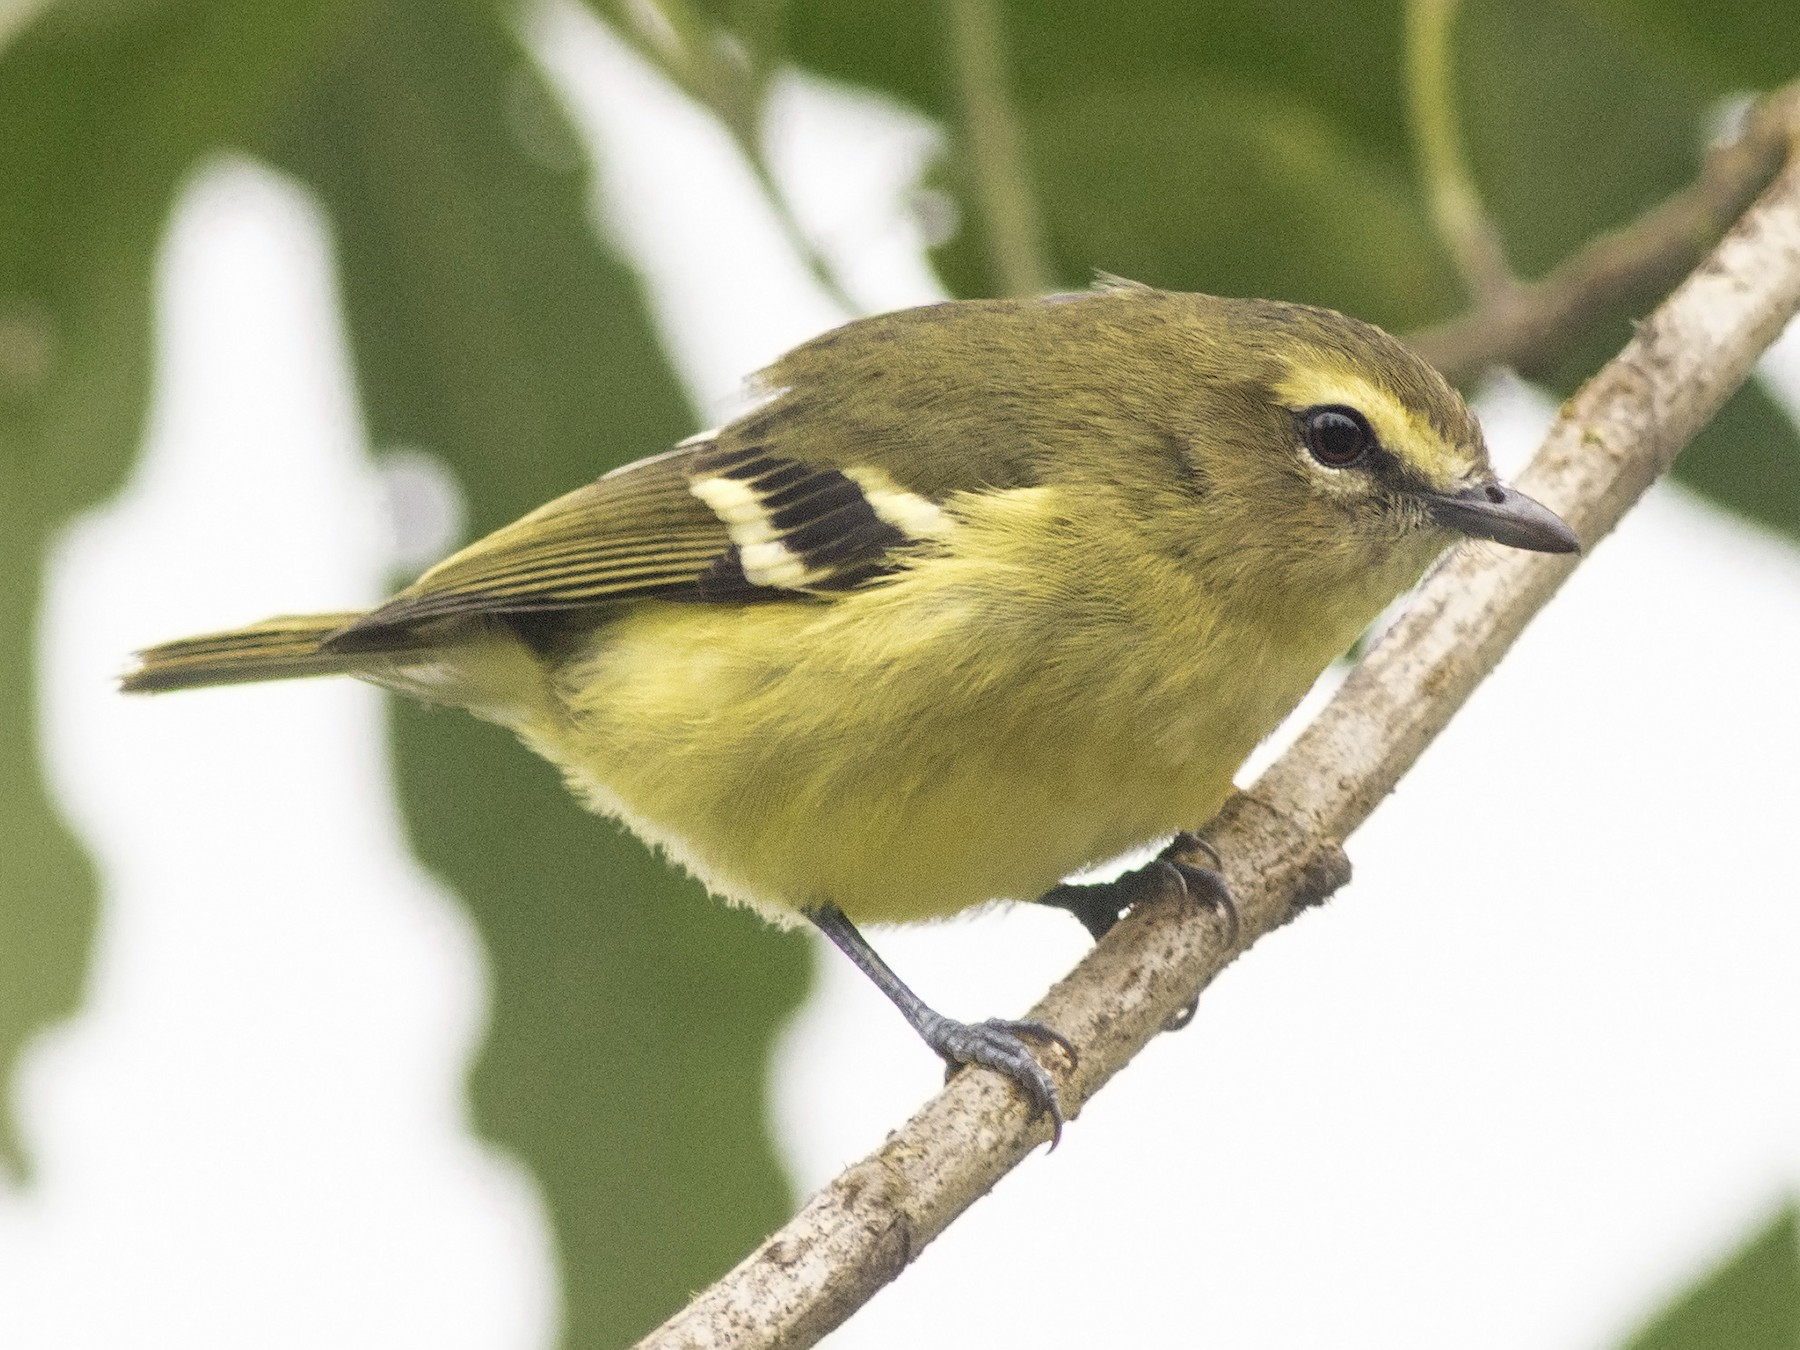 Yellow-winged Vireo - Guillermo  Saborío Vega